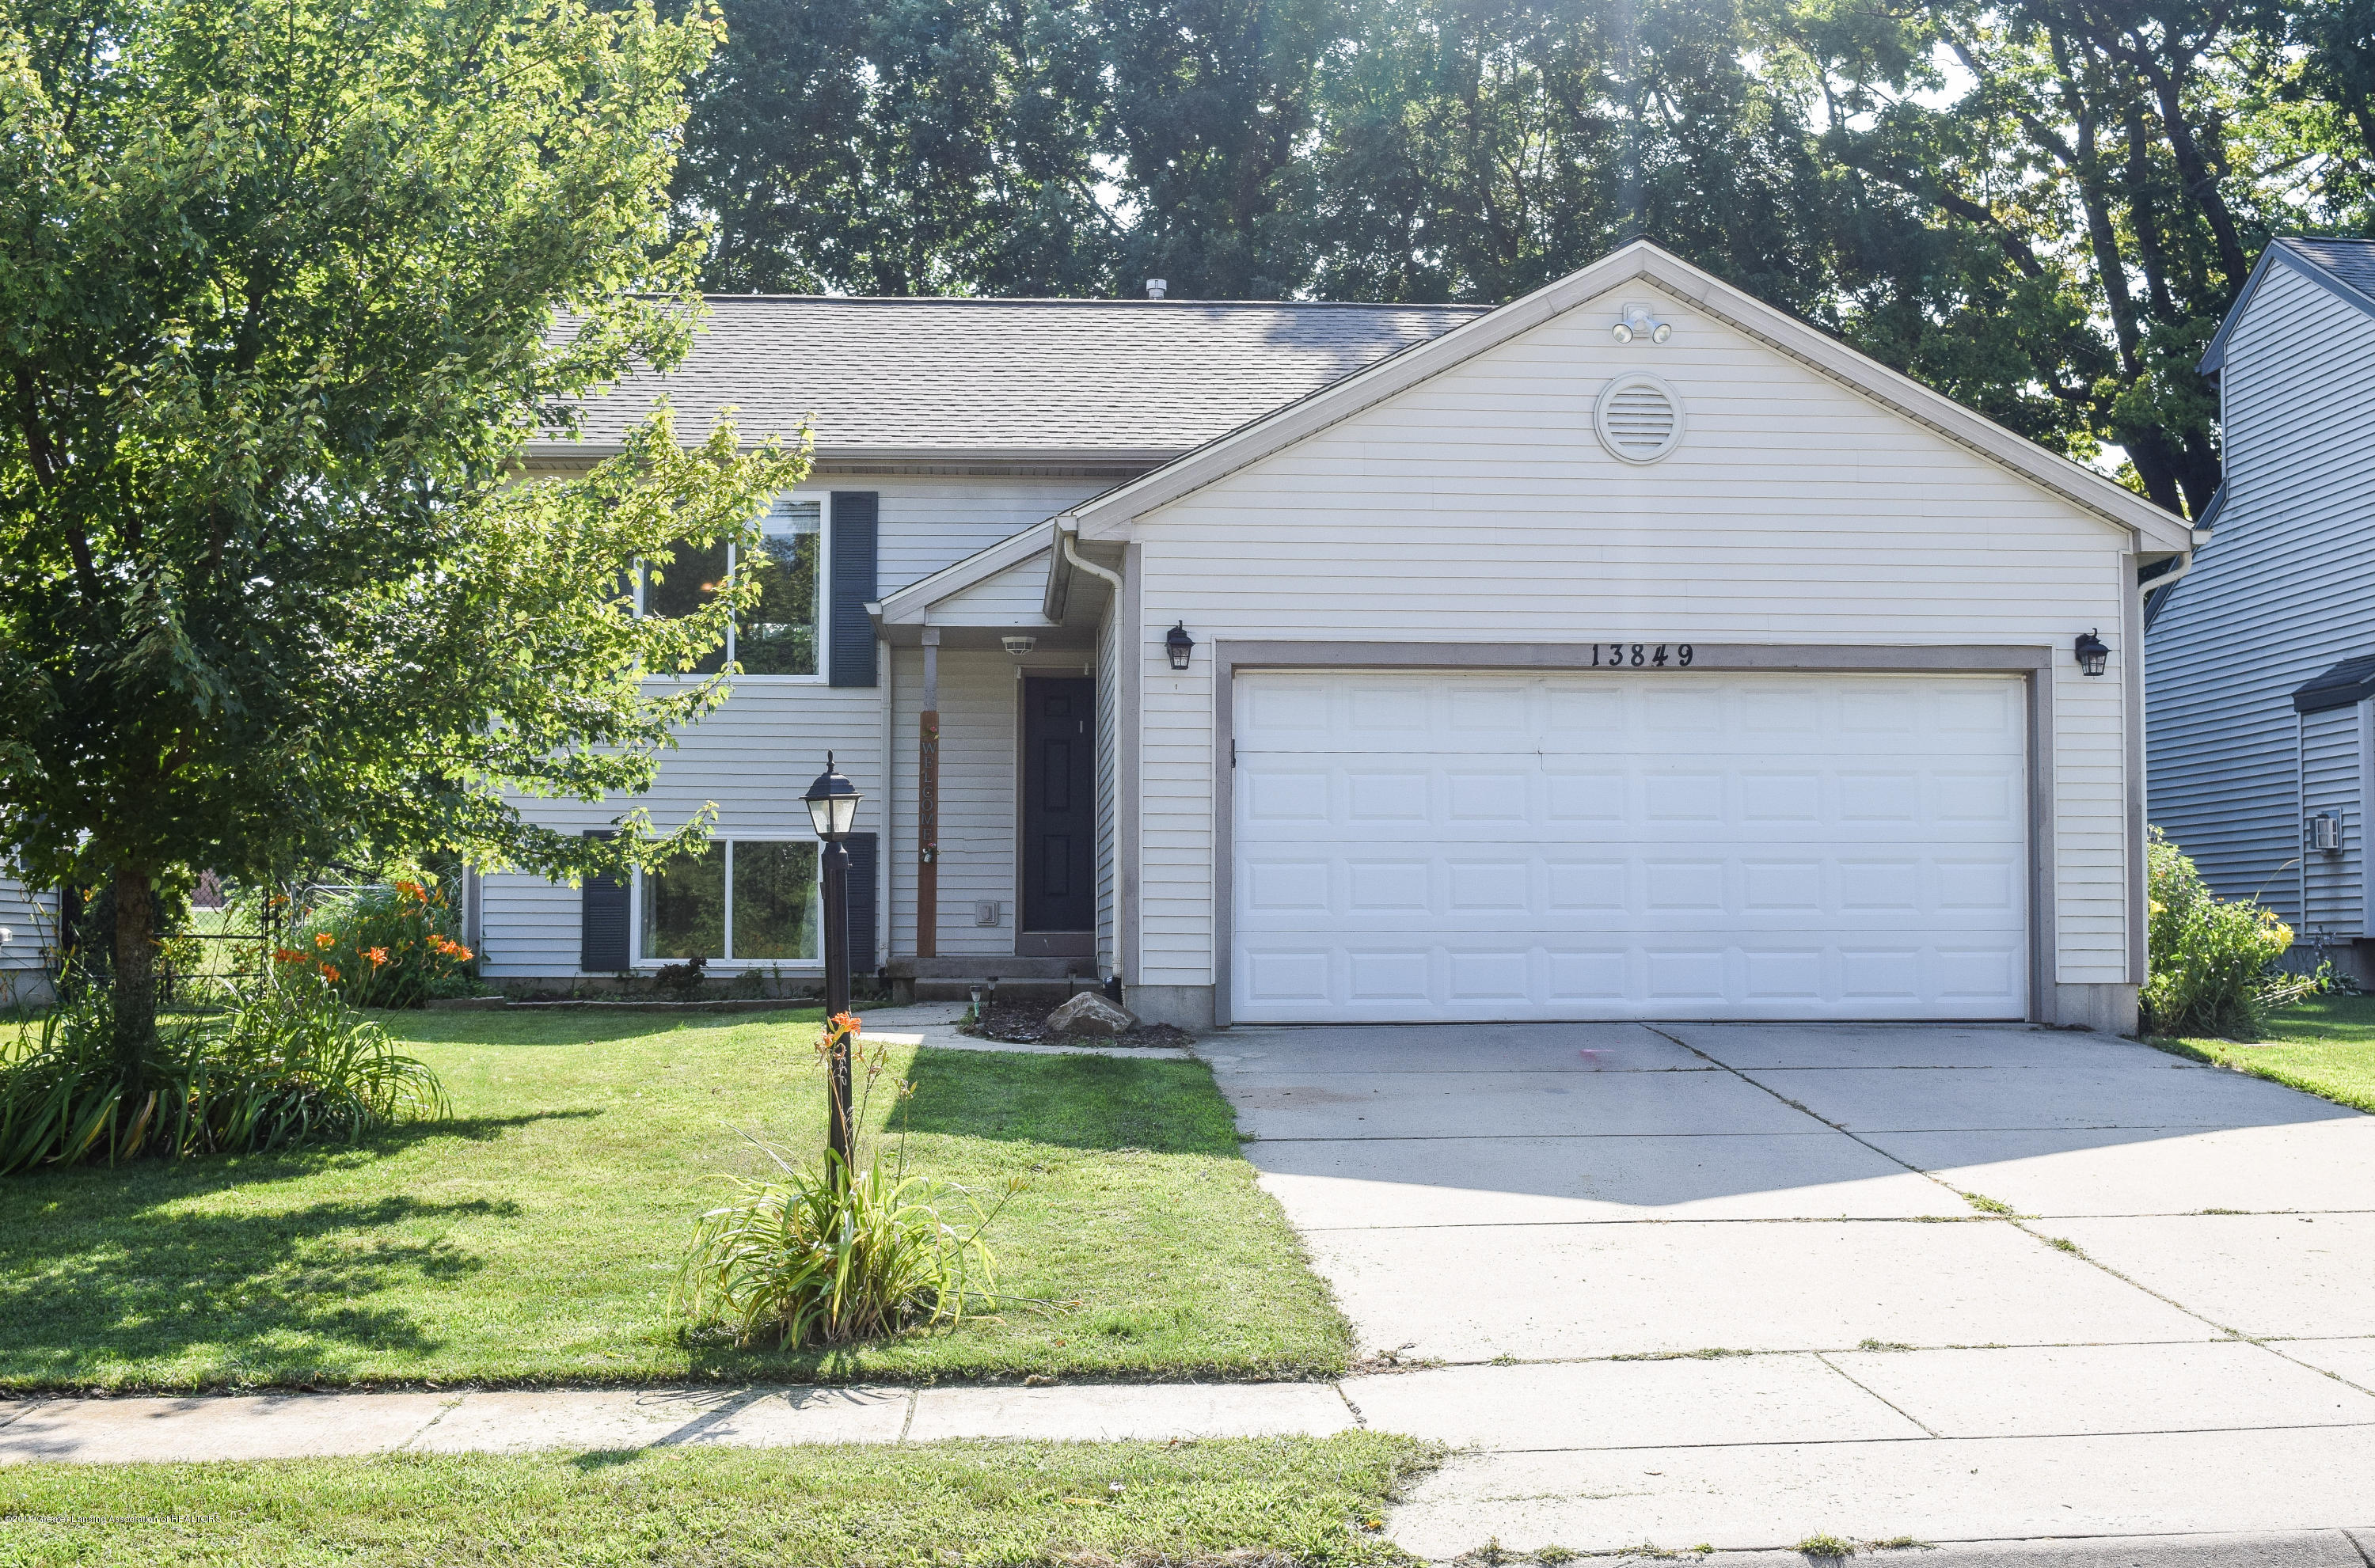 13849 Mead Creek Rd - Ex Front - 1